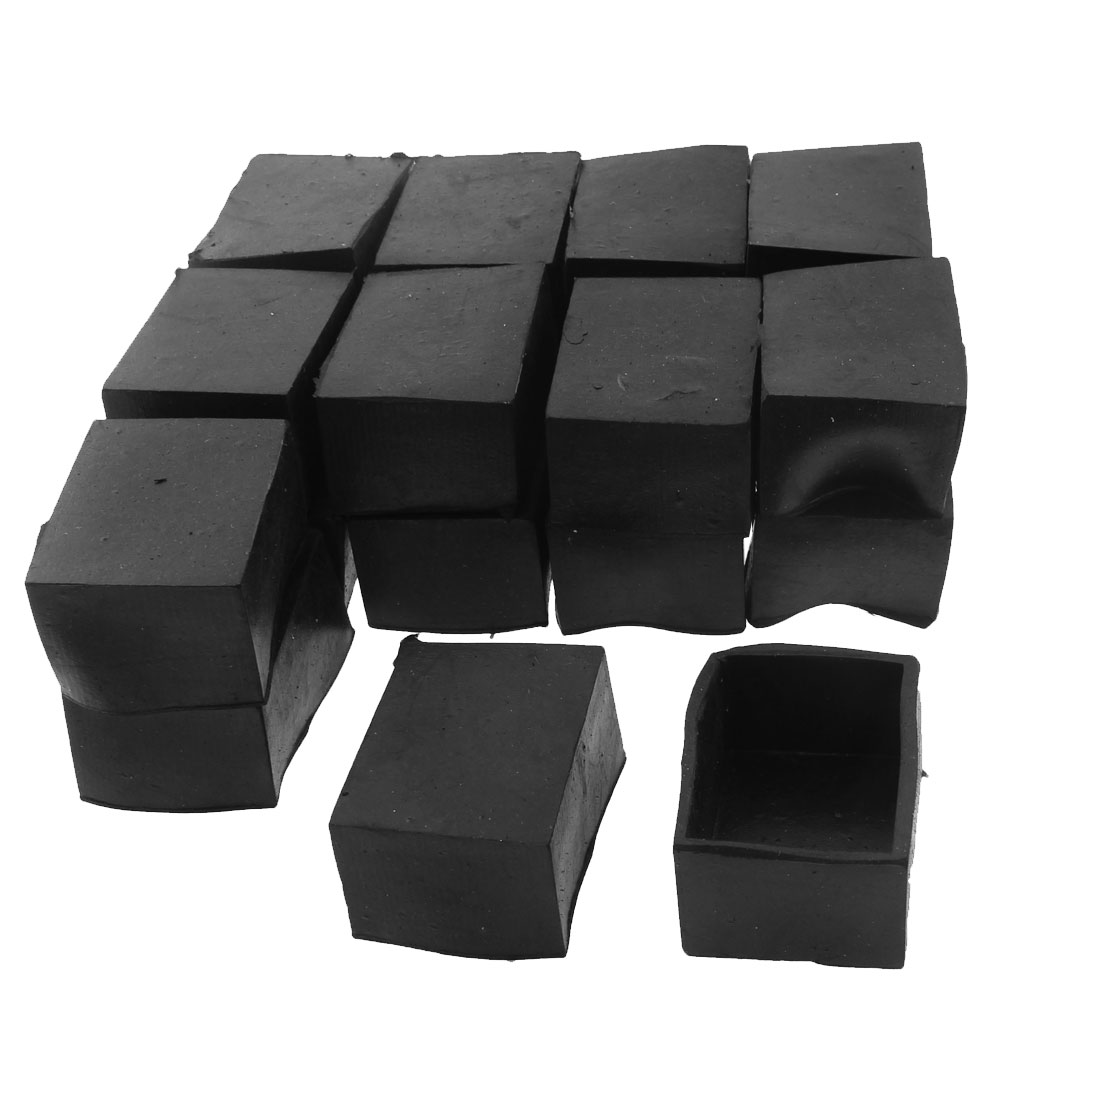 40mm x 30mm Rectangle Shape Furniture Table Chair Foot Leg Rubber End Cap Cover Black 20pcs